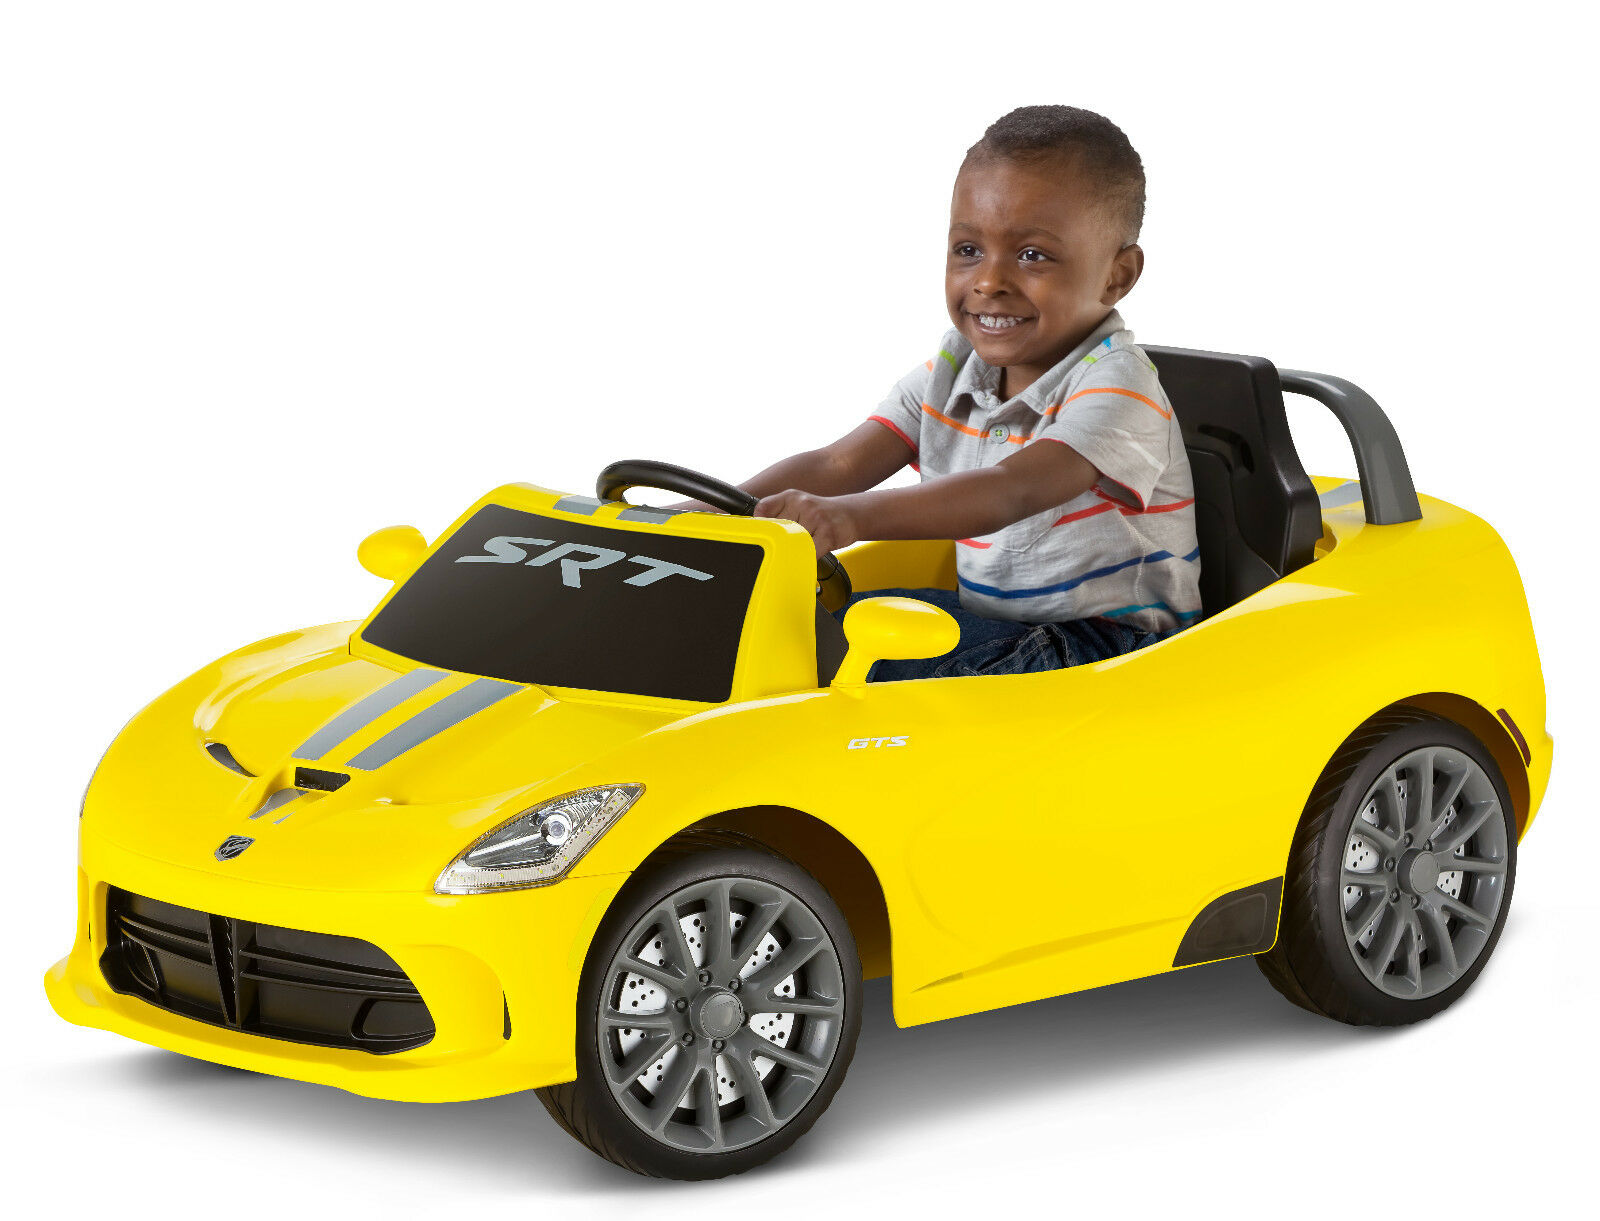 Dodge Viper Ride Yellow 6v Kids Electric Powered Car Outdoor Gift